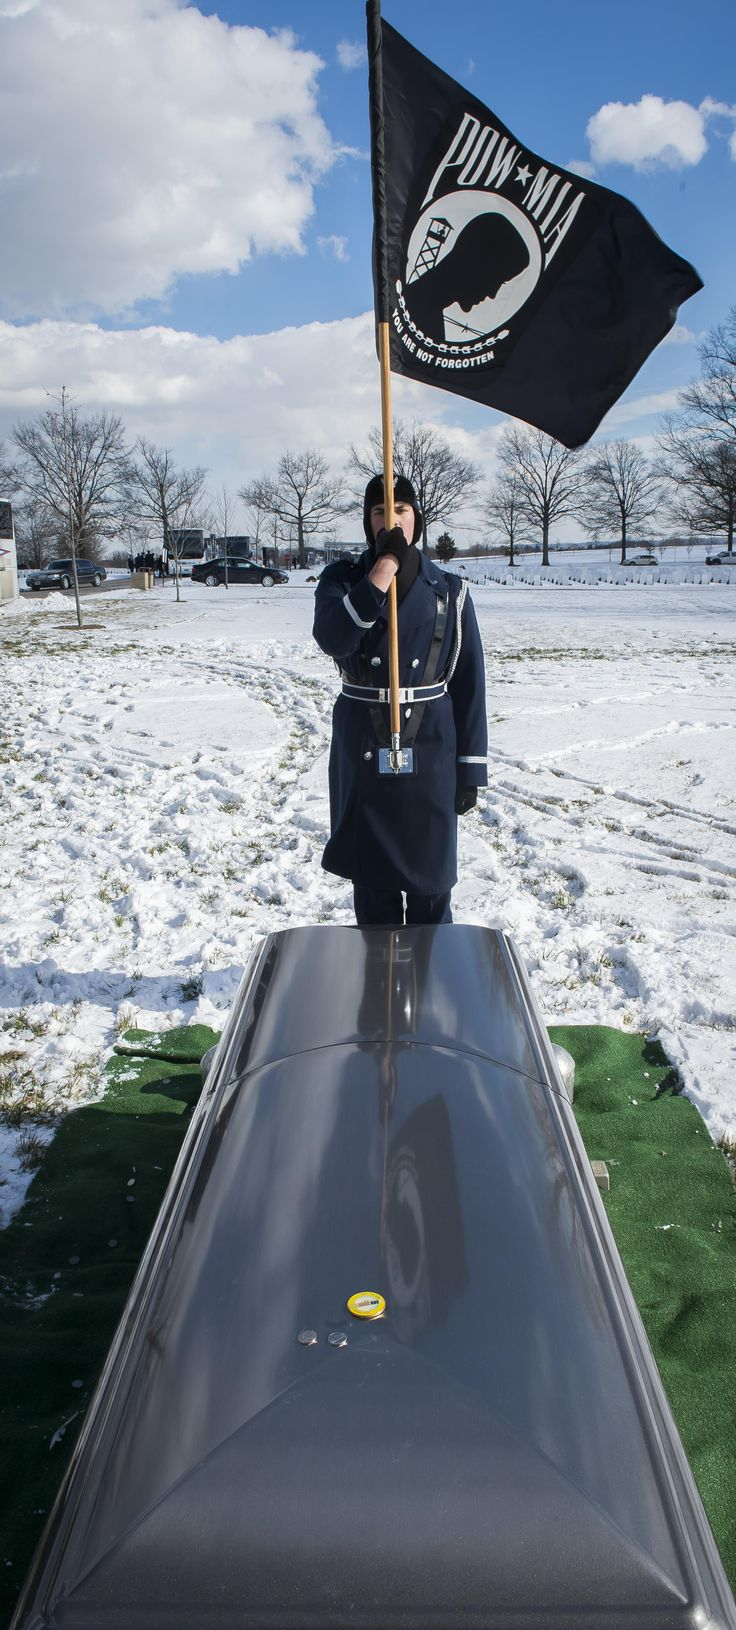 """A member of the U.S. Air Force Honor Guard stands vigil following Brig. Gen. Robinson """"Robbie"""" Risner's full honors military funeral at Arlington National Cemetery, Arlington, Va., Jan. 23, 2014. Risner was the Air Force's 20th Ace and and survived seven and a half years of captivity as a Prisoner of War (POW) in Hoa Lo Prison, a.k.a the Hanoi Hilton. during the Vietnam War. (U.S. Air Force photo/Jim Varhegyi)"""